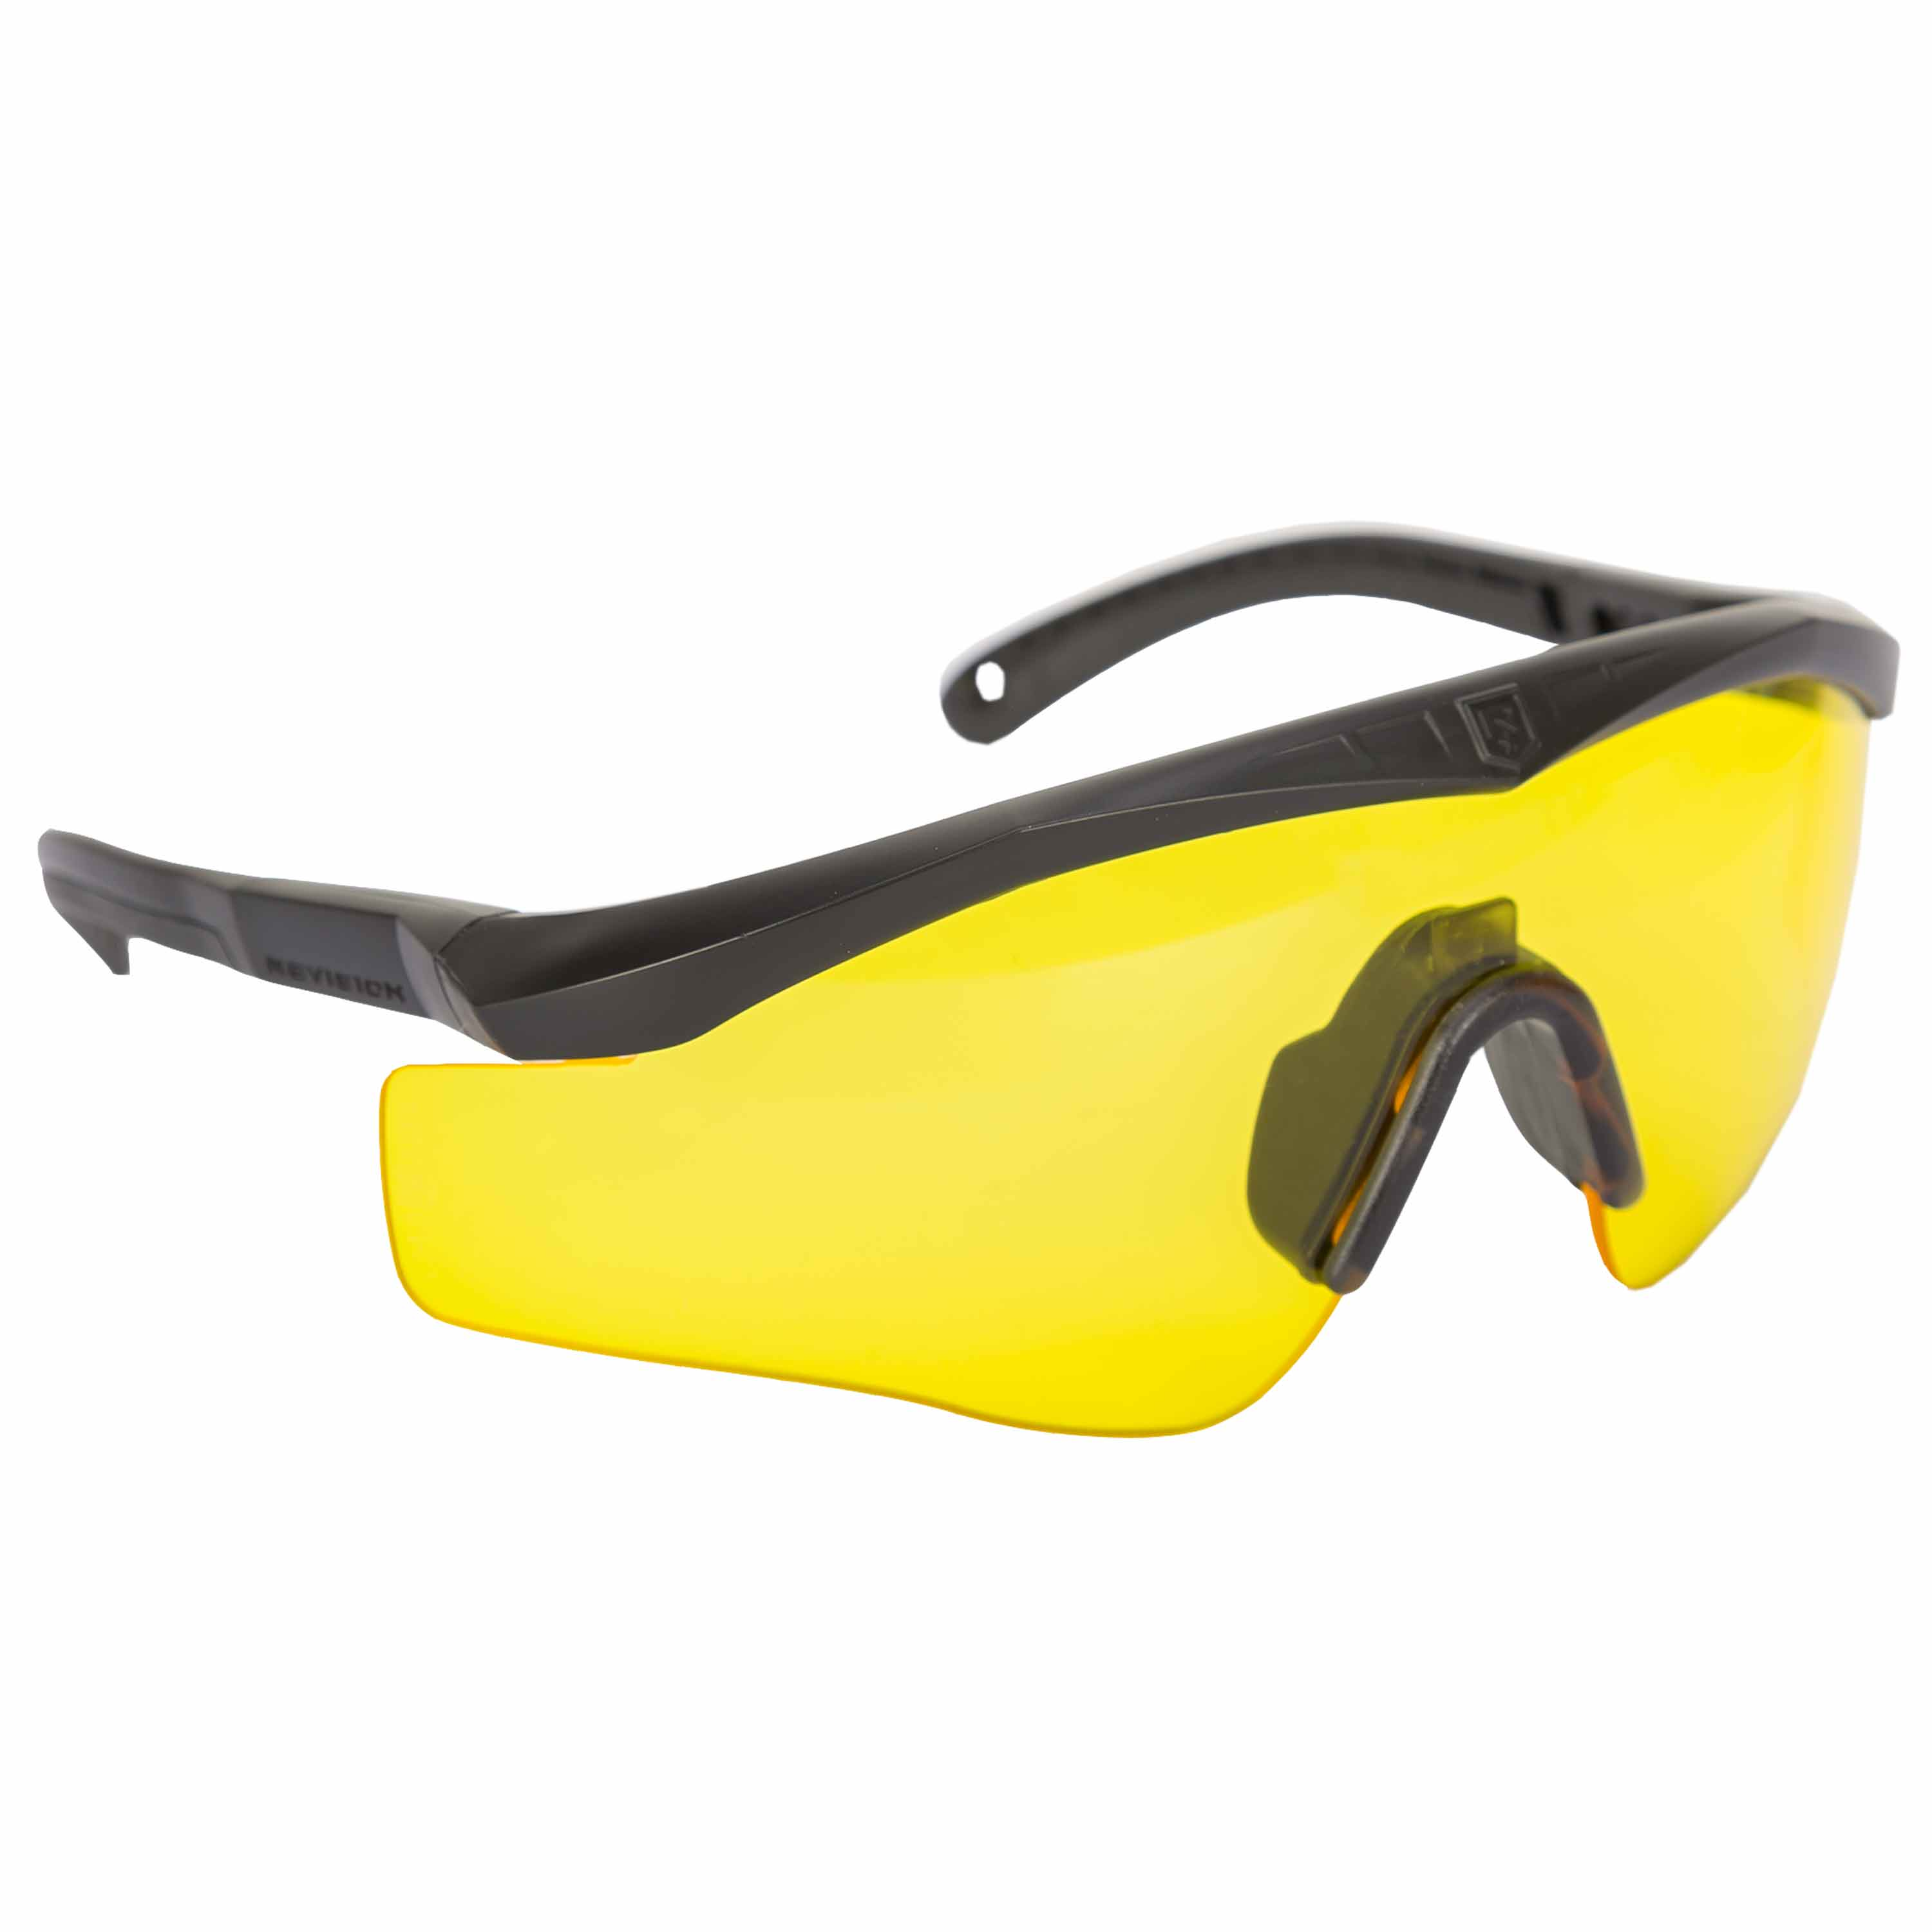 Revision Sawfly MAX-Wrap Basic yellow